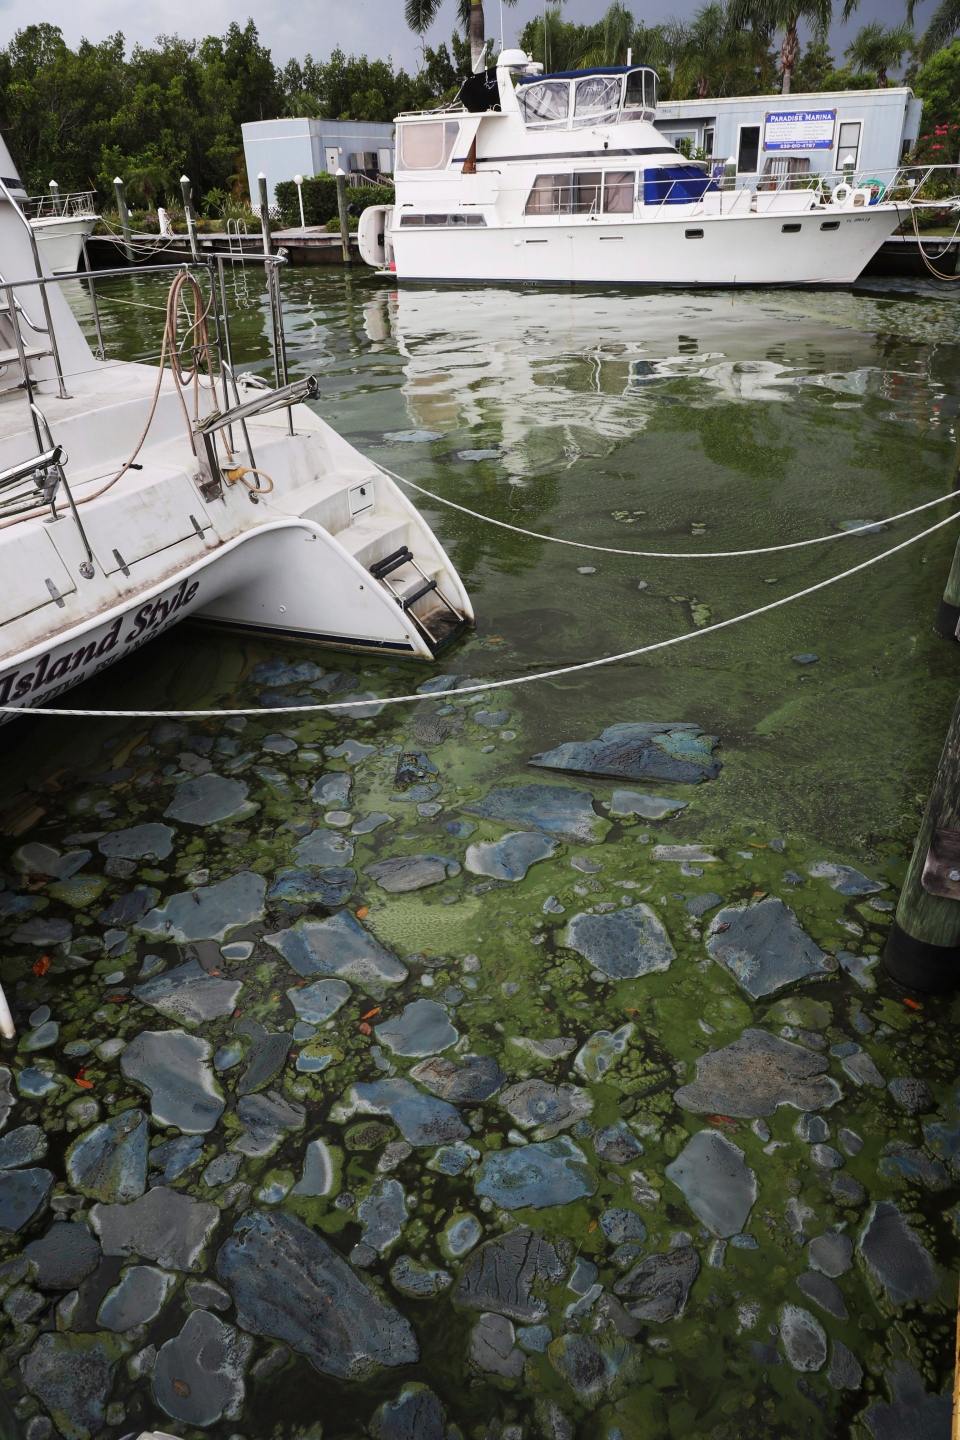 Patches of algae are seen at Paradise Marina in North Fort Myers, Fla., on Tuesday, July 10, 2018. (Andrew West/The News-Press via AP)